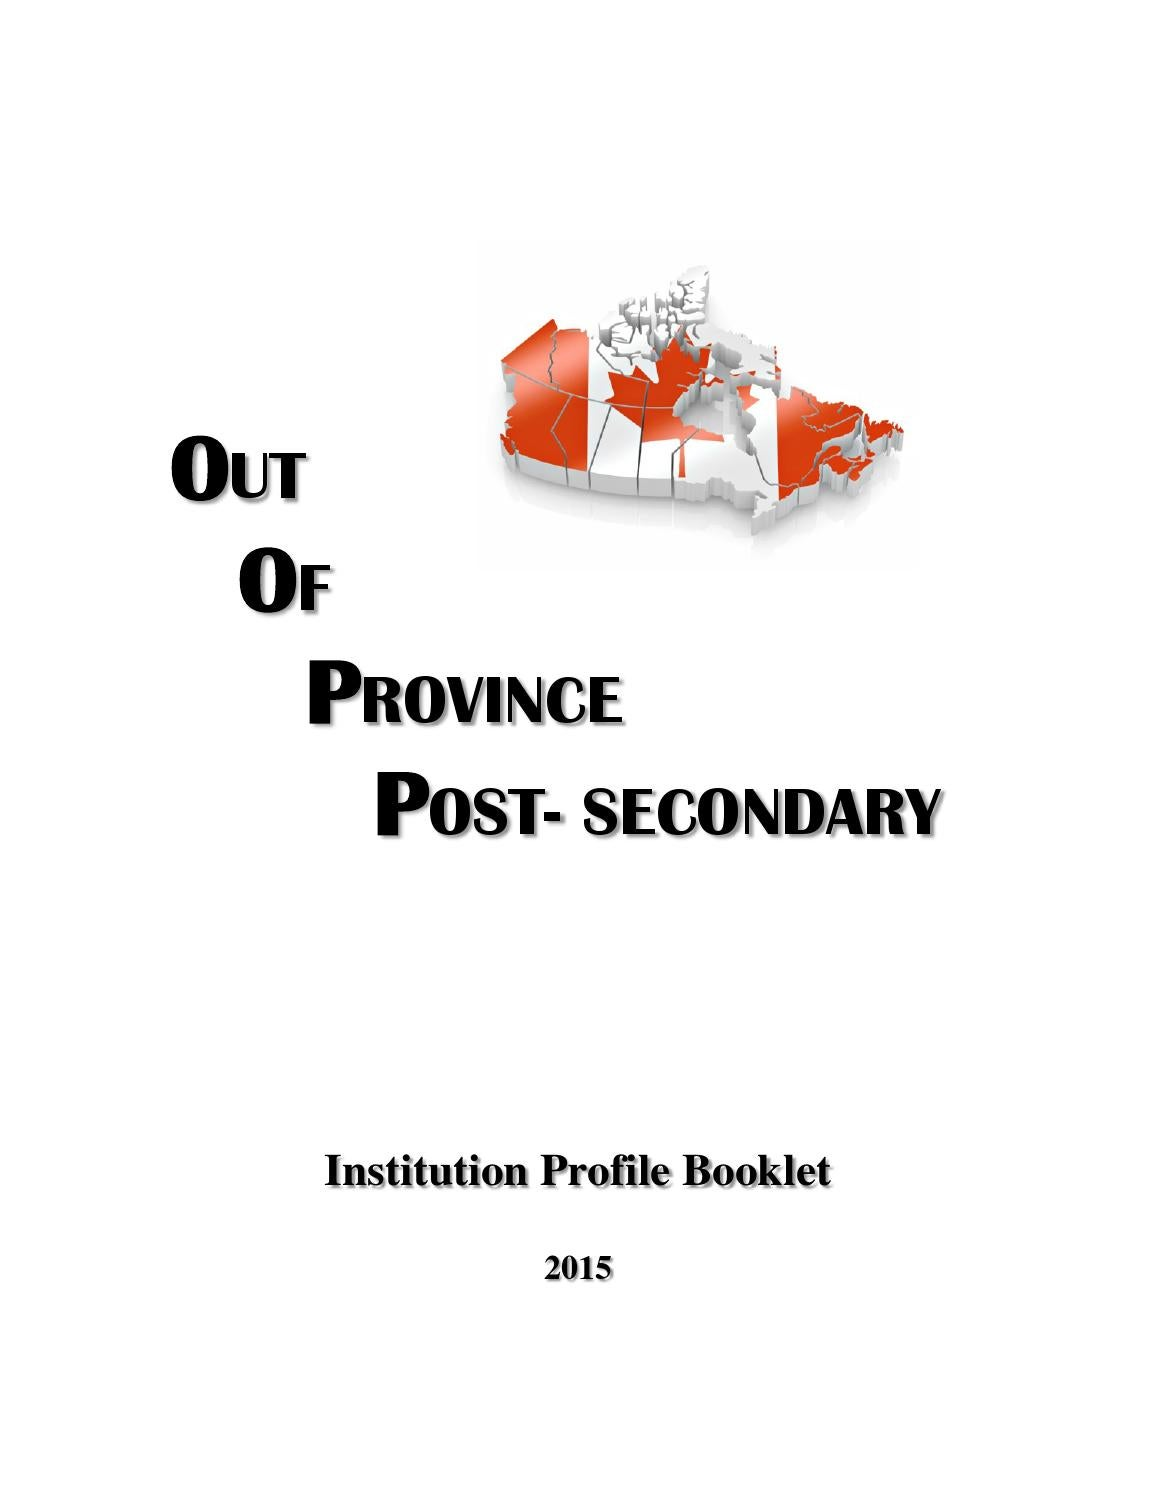 Out of Province Post-Secondary Institutions Booklet 2015